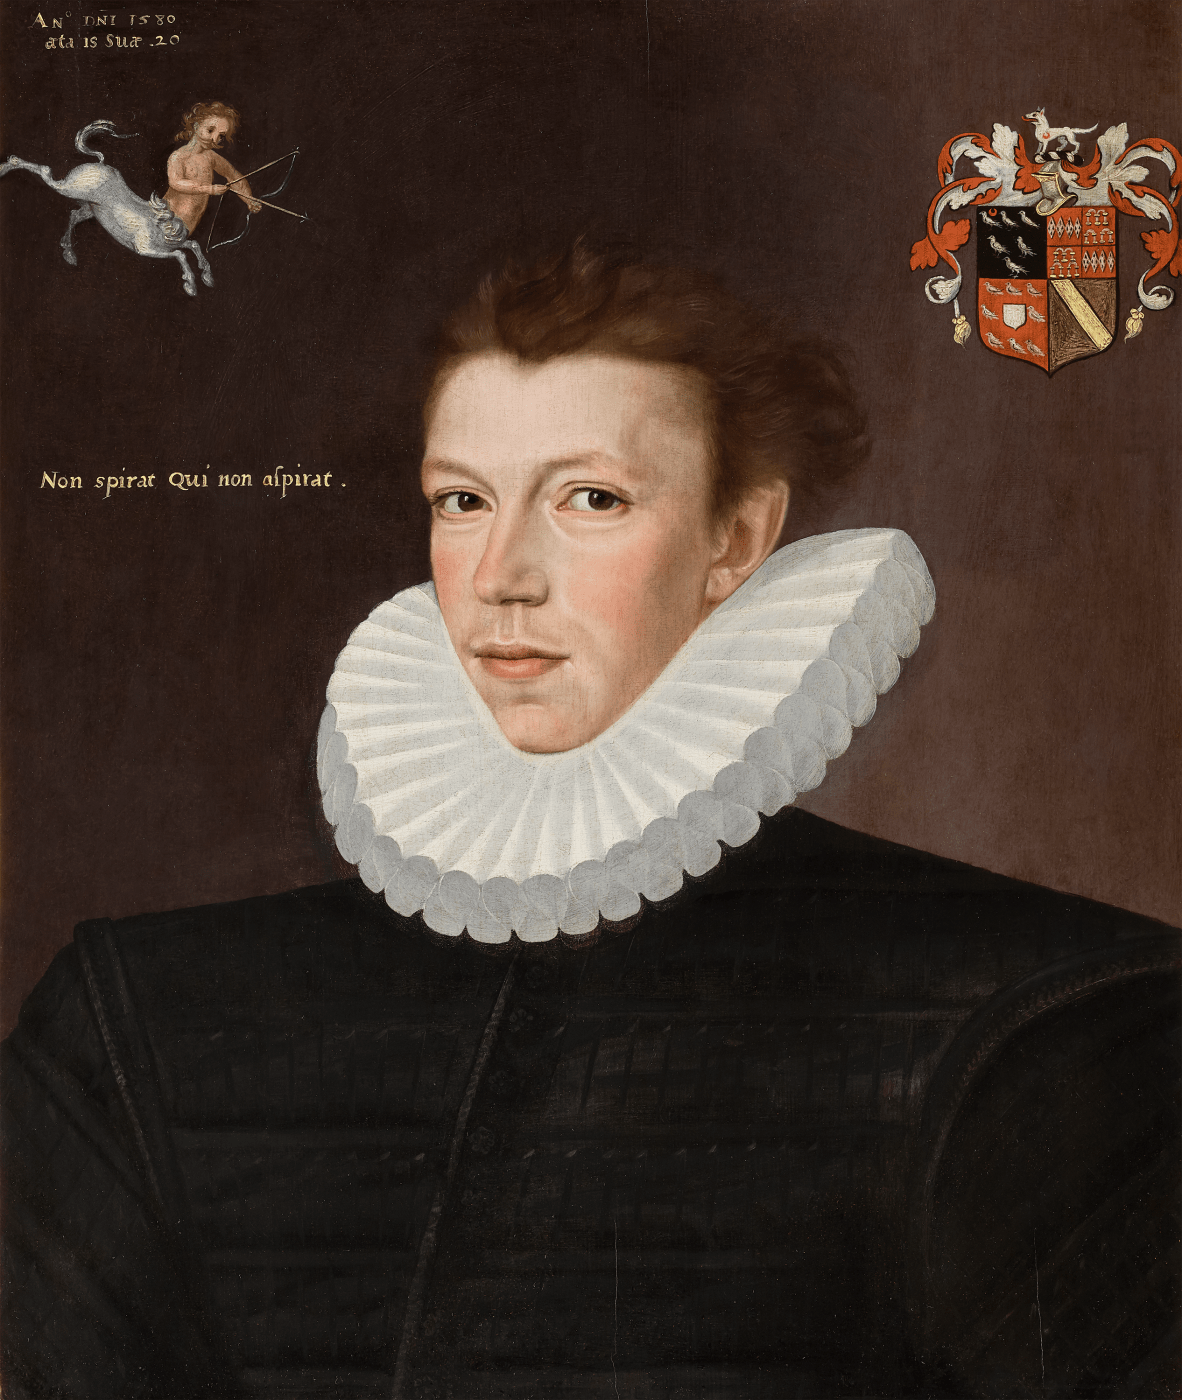 Old Master 16th Century portrait of William Arundell wearing a Tudor ruff by artist George Gower